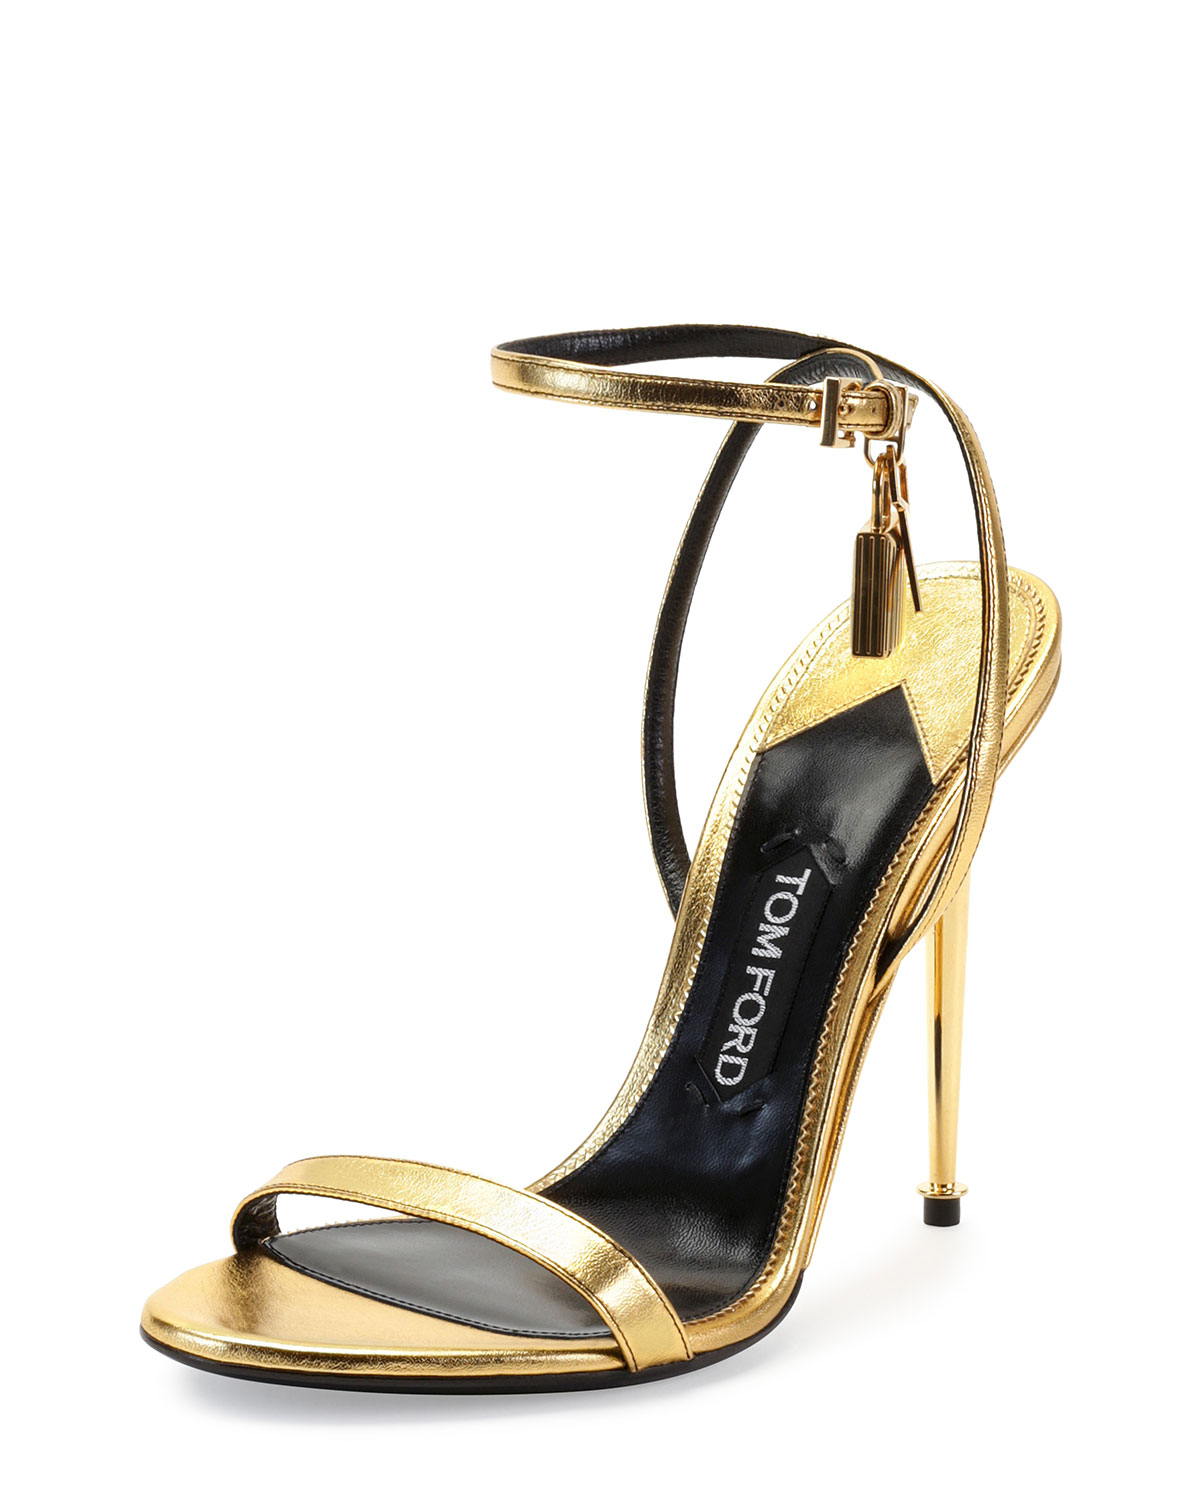 6465625d0c61 TOM FORD Metallic Ankle-Lock Sandals